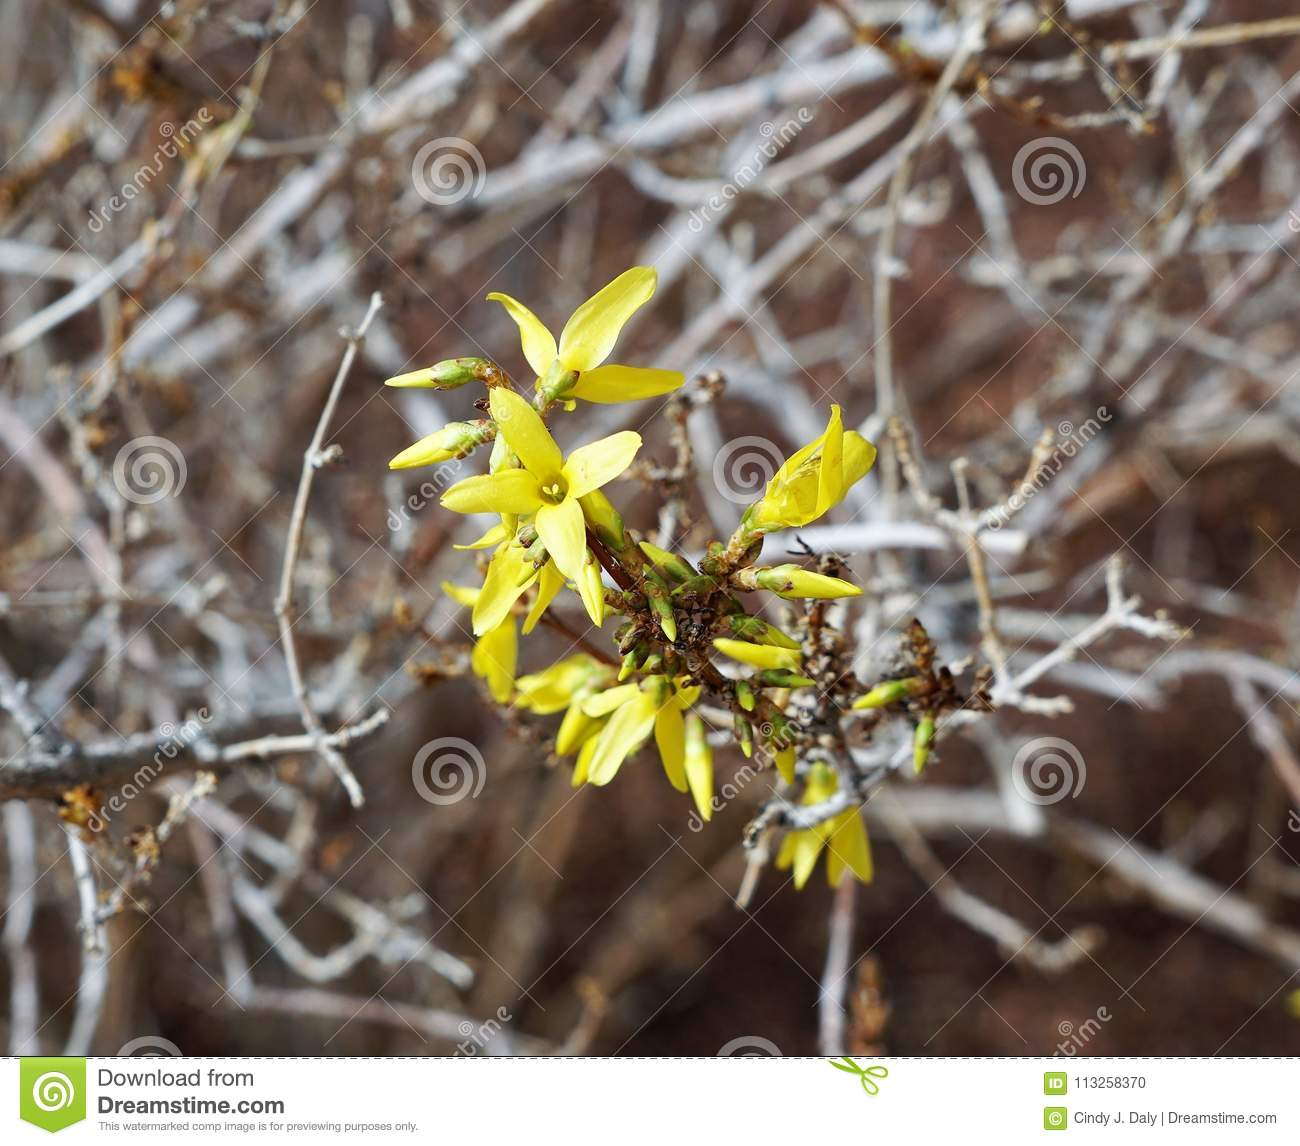 A tiny yellow clump of flowers on a bush stock photo image of download a tiny yellow clump of flowers on a bush stock photo image of flowers mightylinksfo